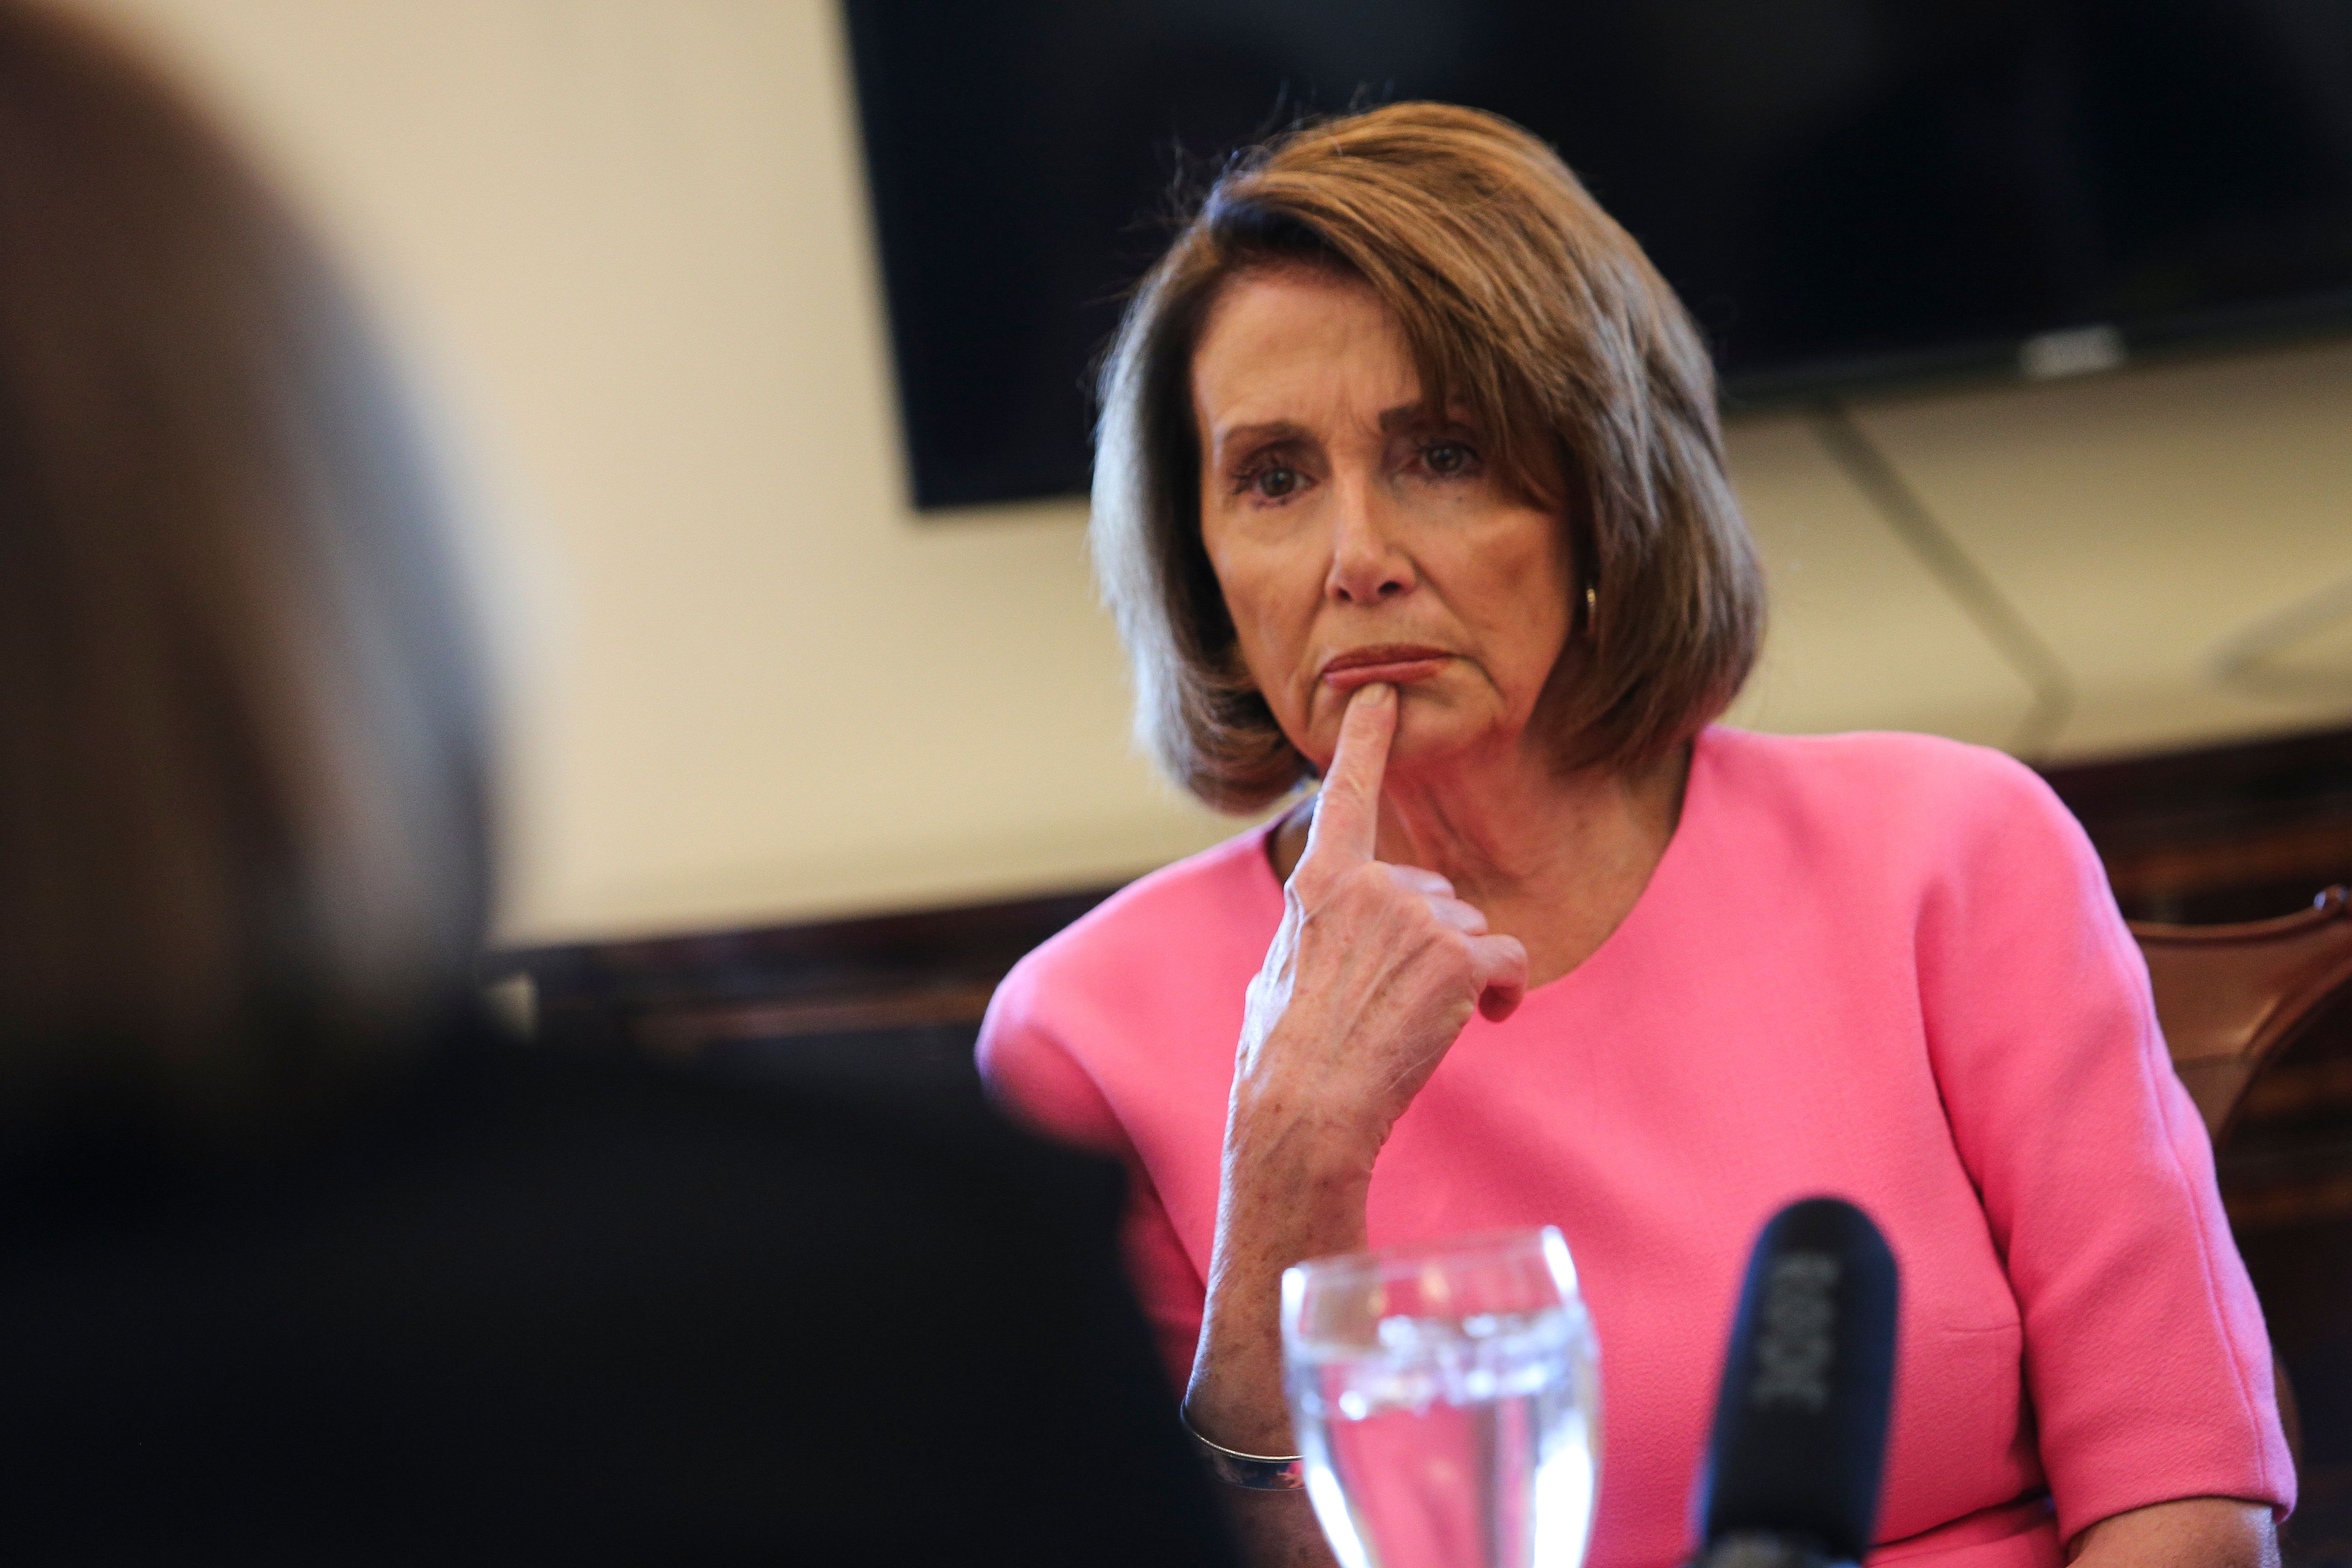 WASHINGTON, DC - MAY 2: House Minority Leader Nancy Pelosi of Calif. listens to reporters during meeting in her office on Capitol Hill, in Washington, DC., on May 2, 2017.  (Photo by Oliver Contreras/For The Washington Post via Getty Images)